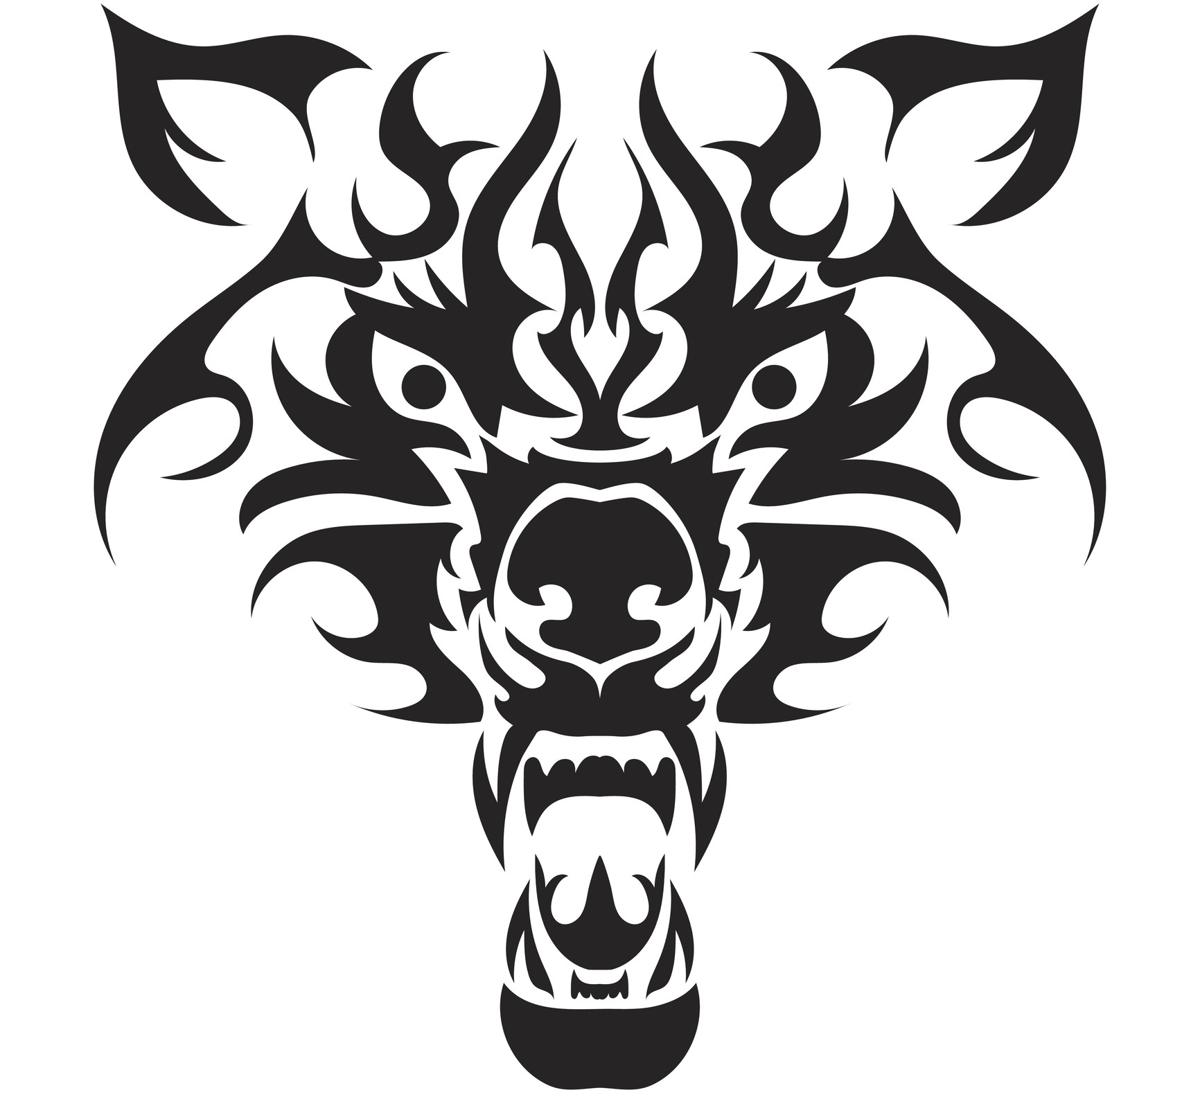 1200x1097 Irresistible Wolf Tattoo Designs That Highlight Power And Loyalty